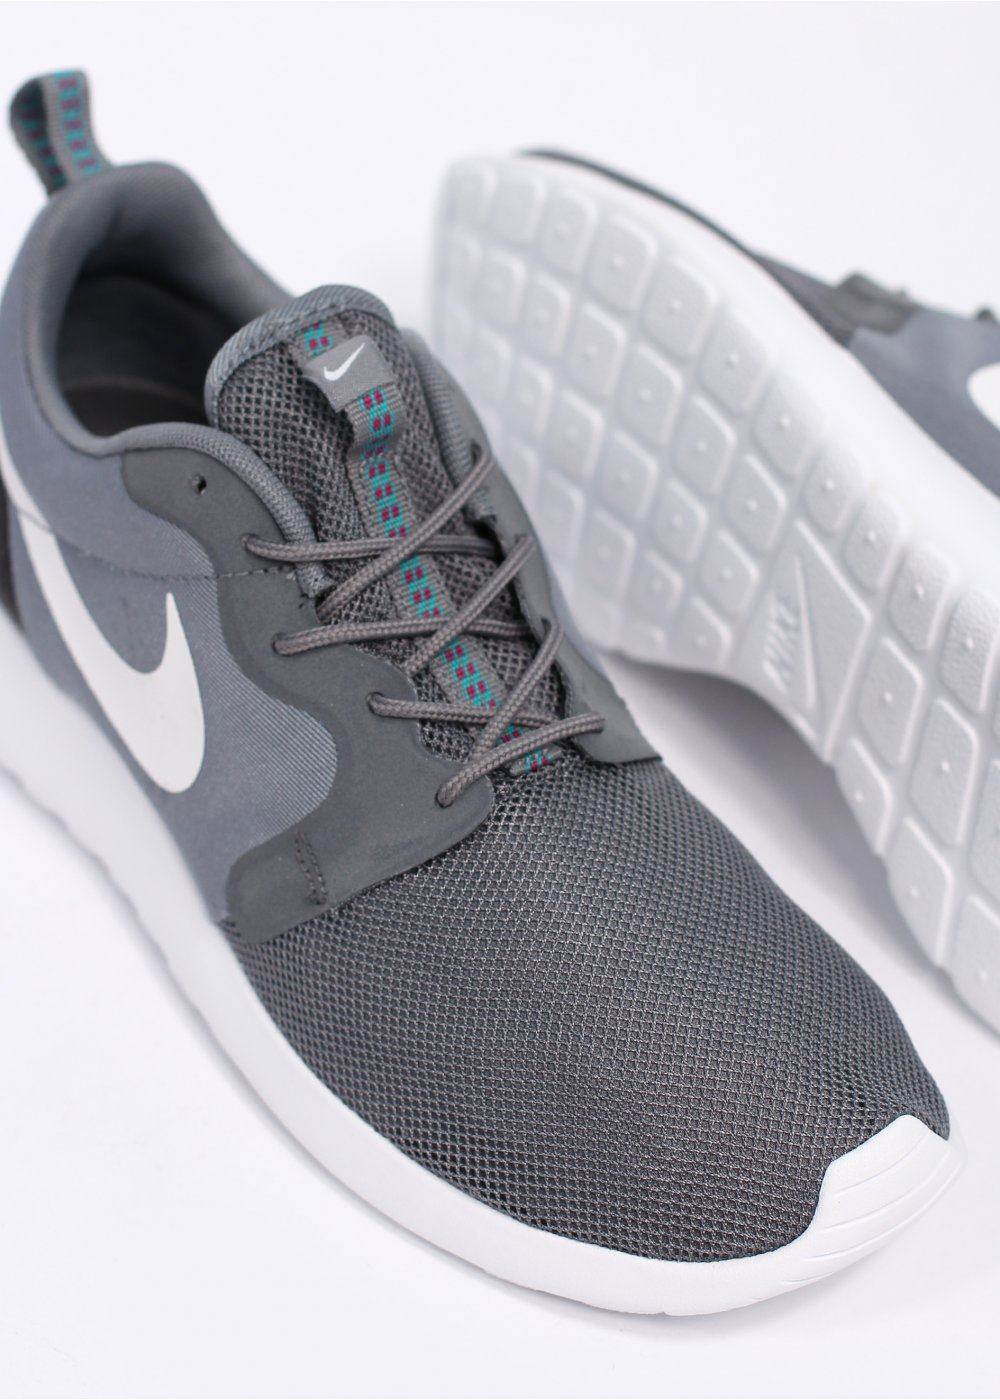 nike roshe run hyperfuse cool grey anthracite turbo. Black Bedroom Furniture Sets. Home Design Ideas